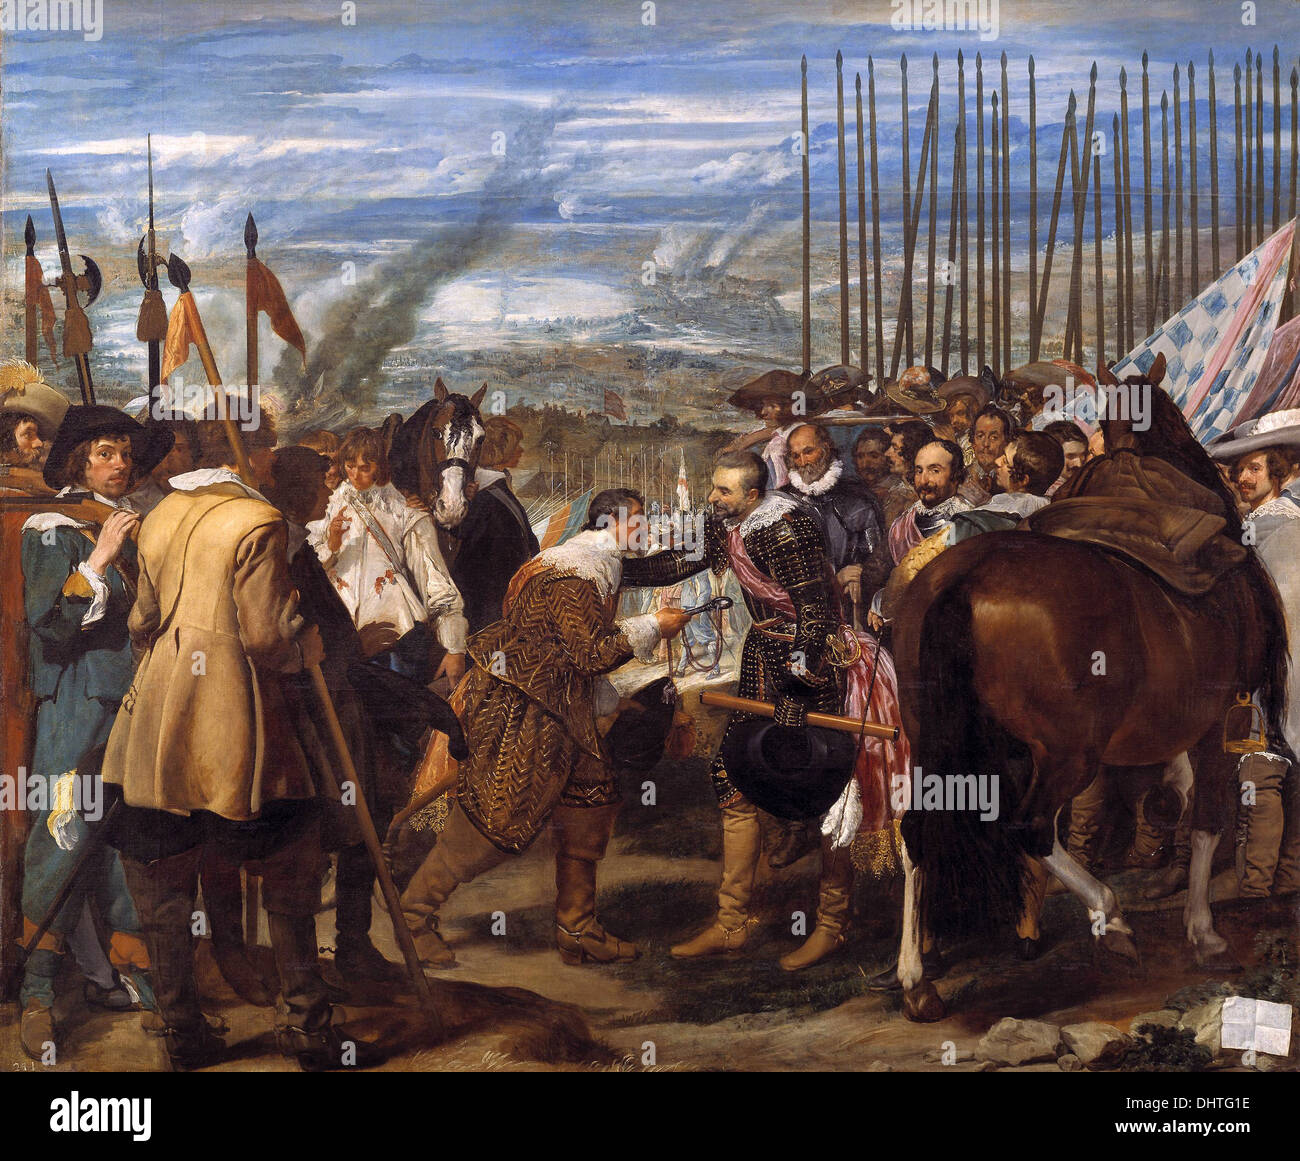 The Surrender of Breda - by Diego Velázquez, 1635 - Stock Image